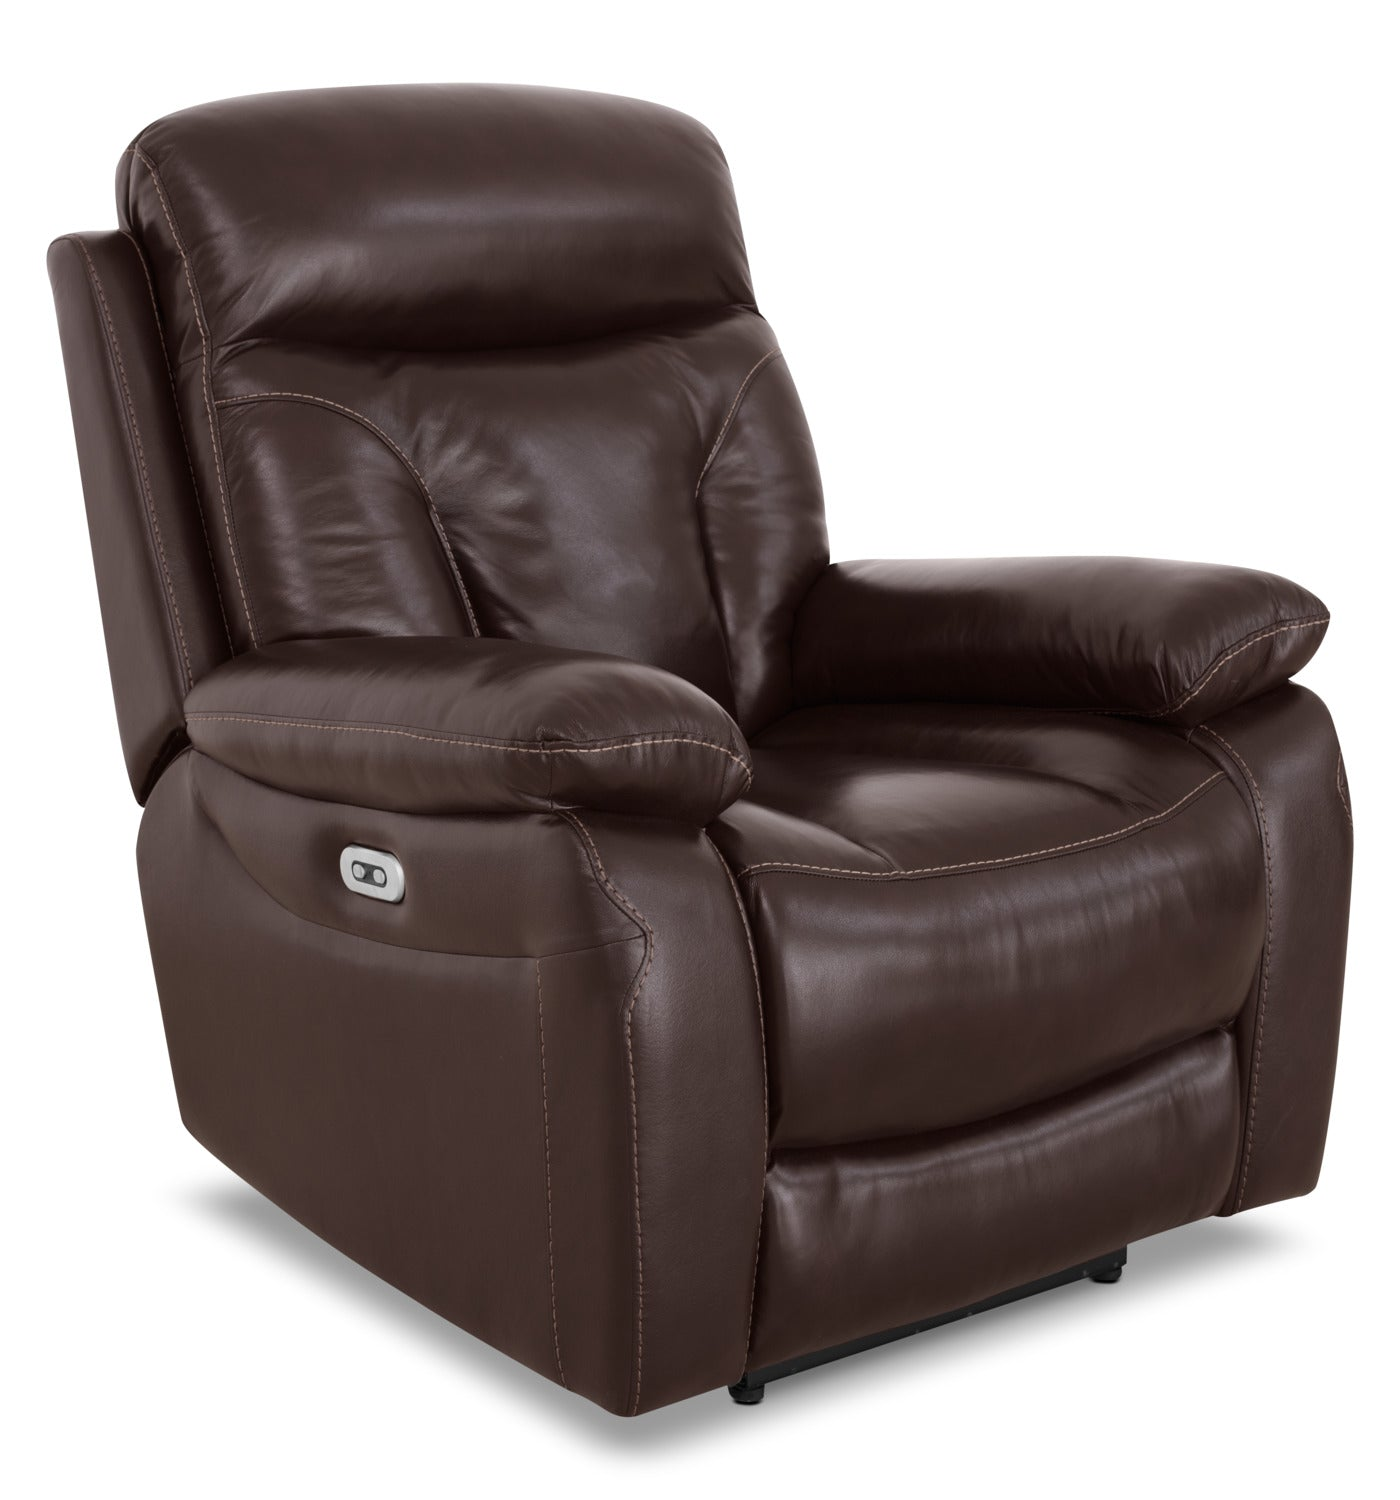 Groovy Hayes Genuine Leather Power Reclining Chair Brown Caraccident5 Cool Chair Designs And Ideas Caraccident5Info